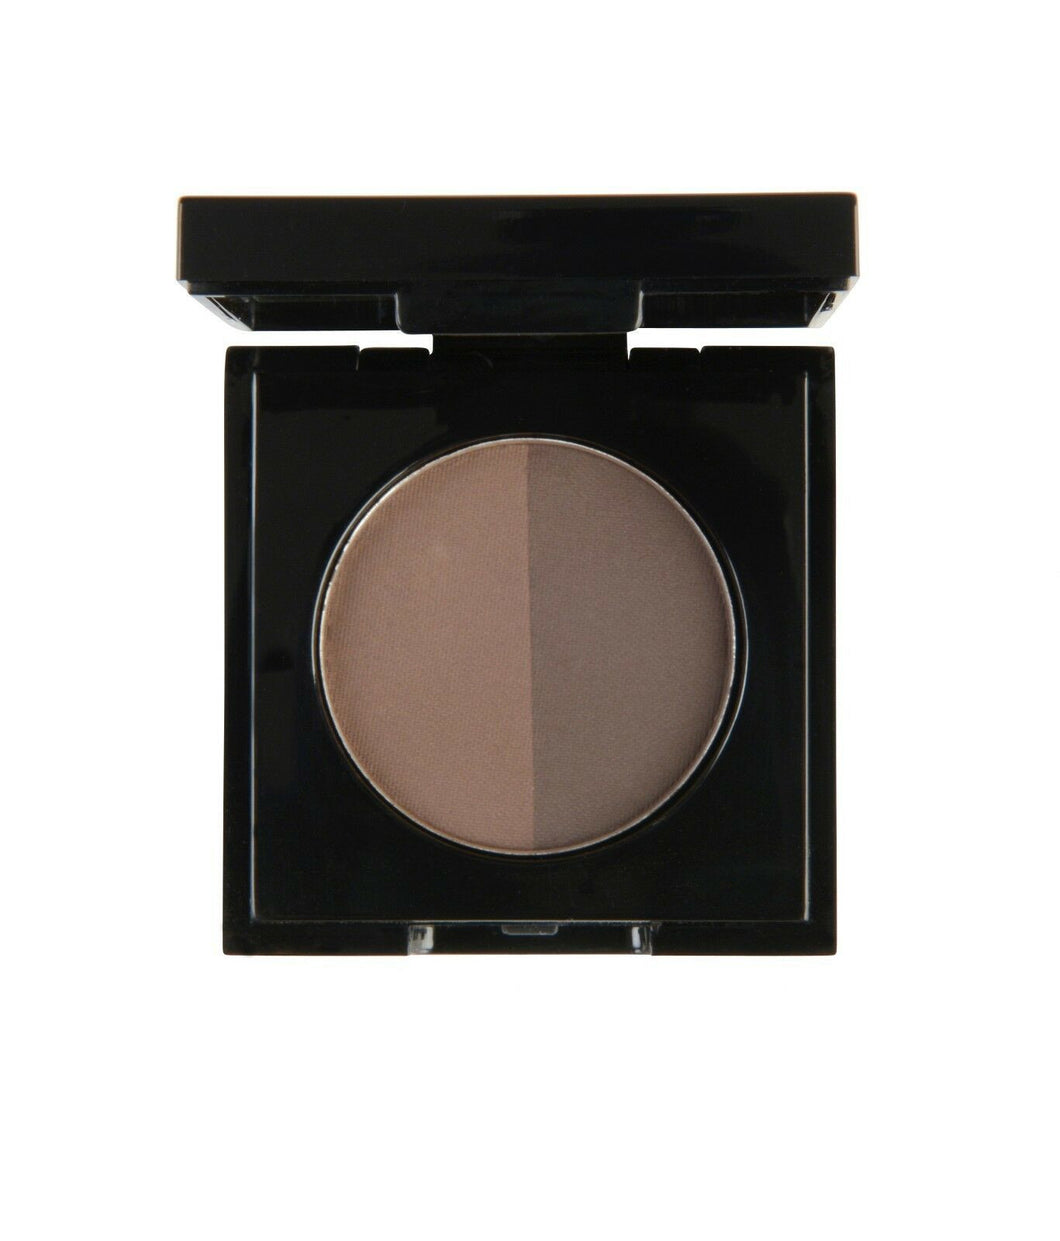 iaahhaircare,Brunette - Brow Powder x 1 Garbo & Kelly,Brow Powder,Garbo & Kelly